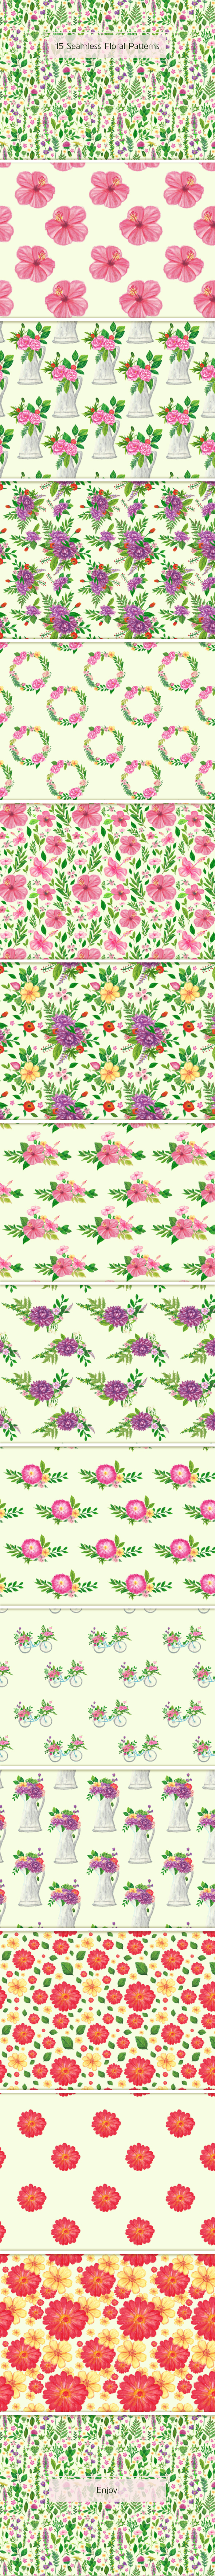 15 Seamless Floral Patterns - Nature Textures / Fills / Patterns